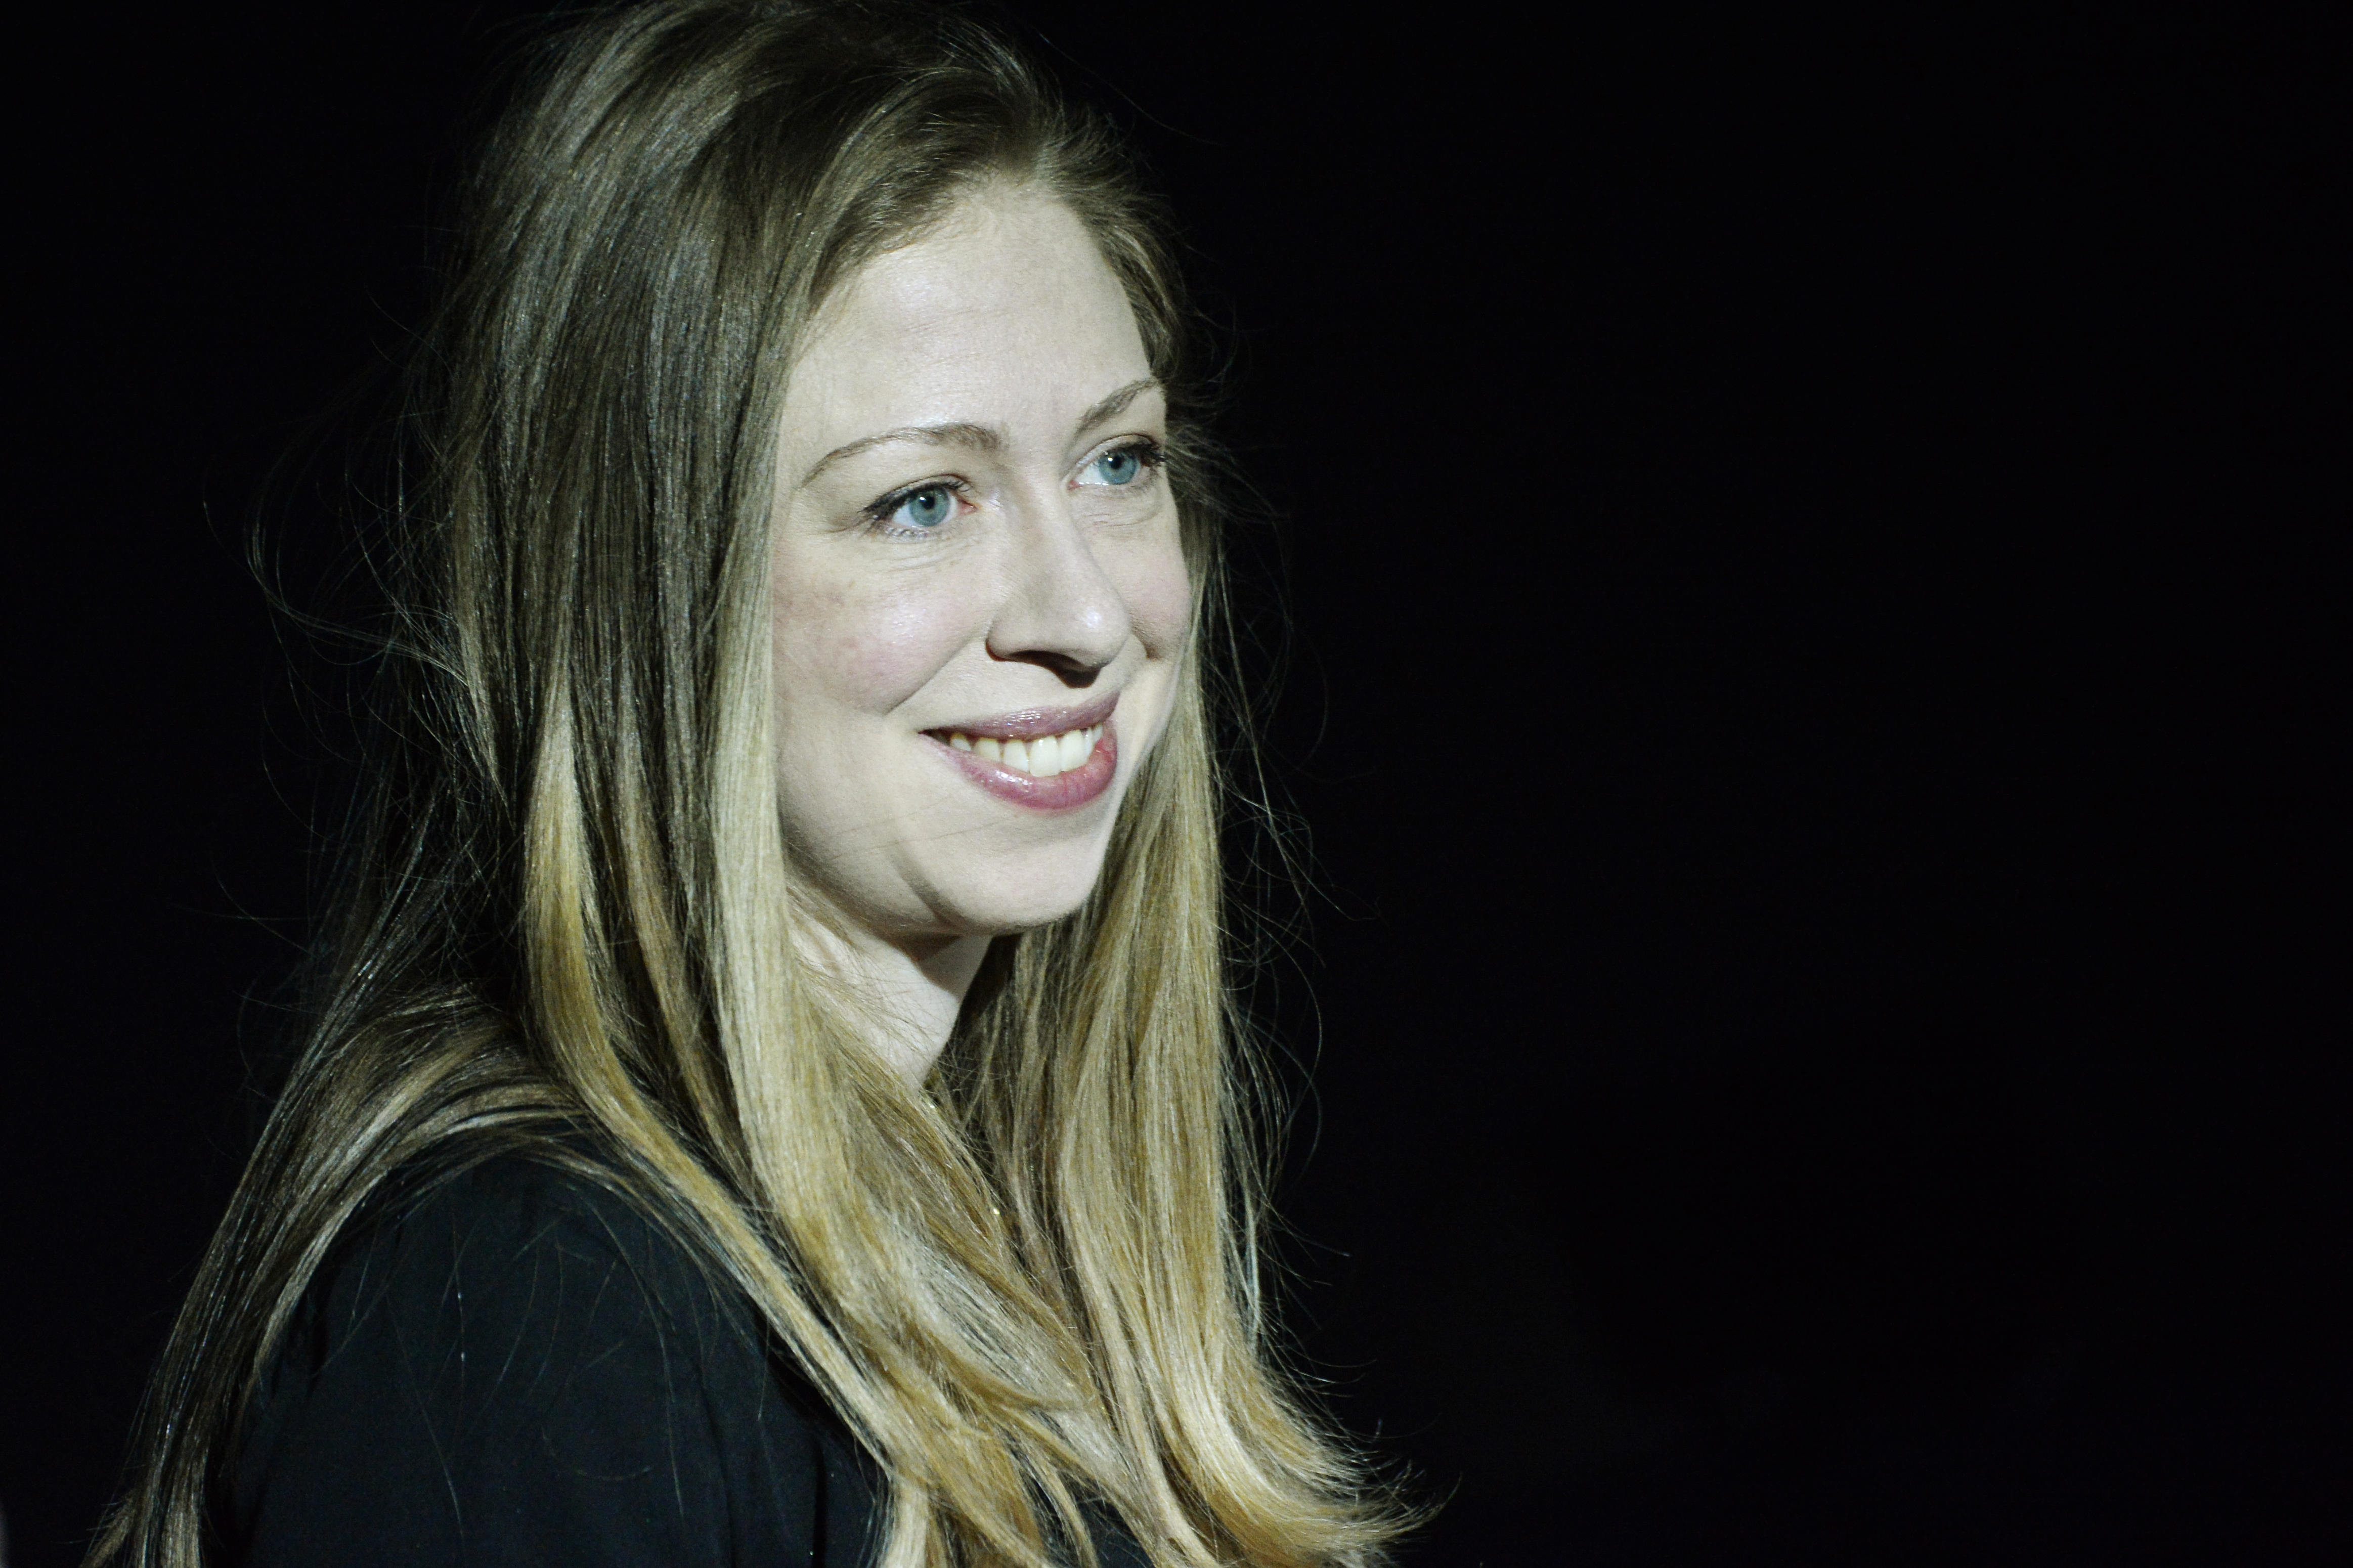 Chelsea Clinton: Schools Need Help Girls Get Into STEM | Time